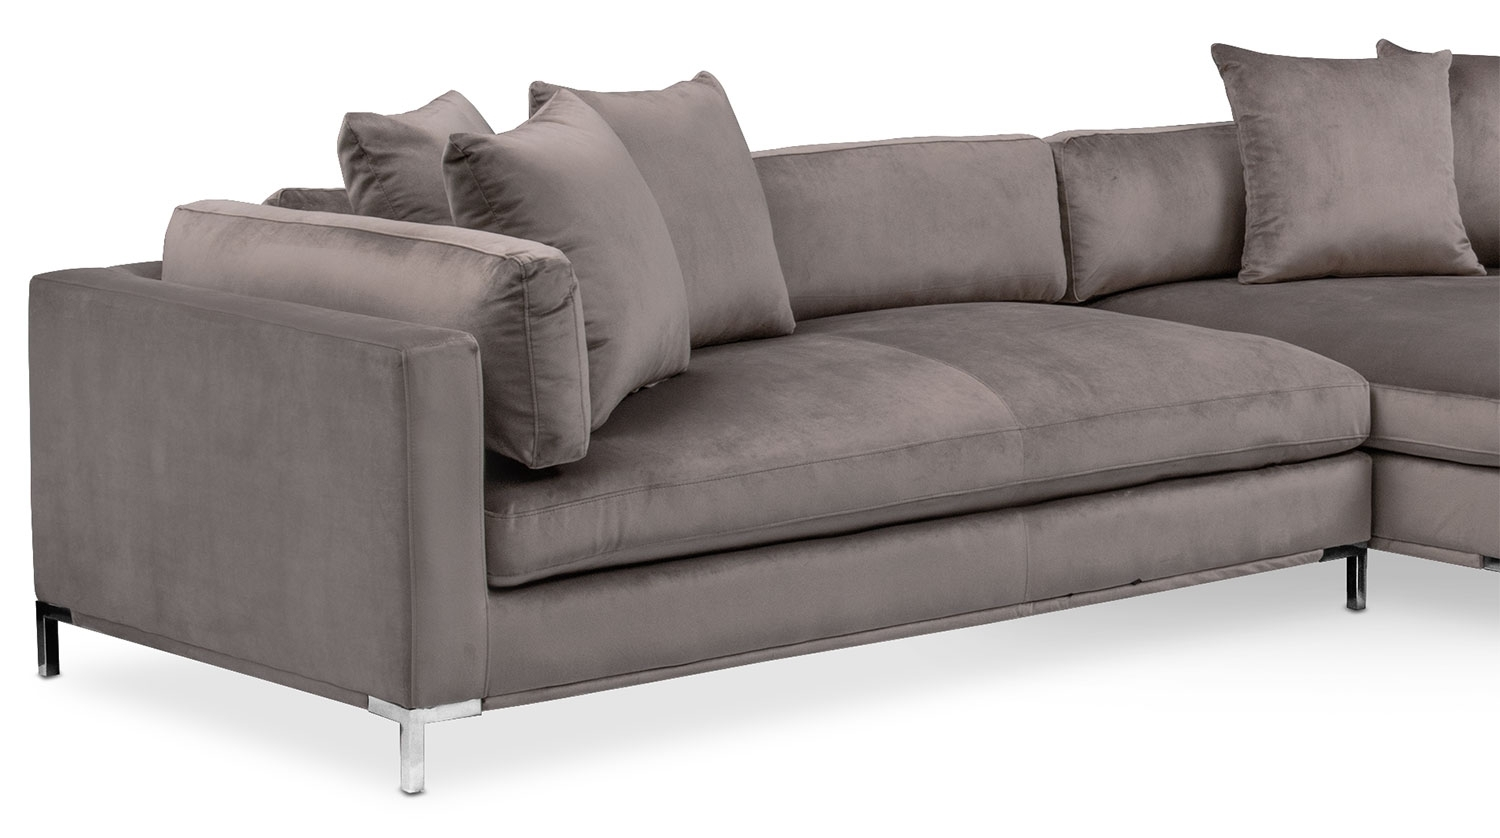 Moda 3 Piece Sectional With Left Facing Chaise – Oyster | American With Regard To Nico Grey Sectionals With Left Facing Storage Chaise (Image 16 of 25)